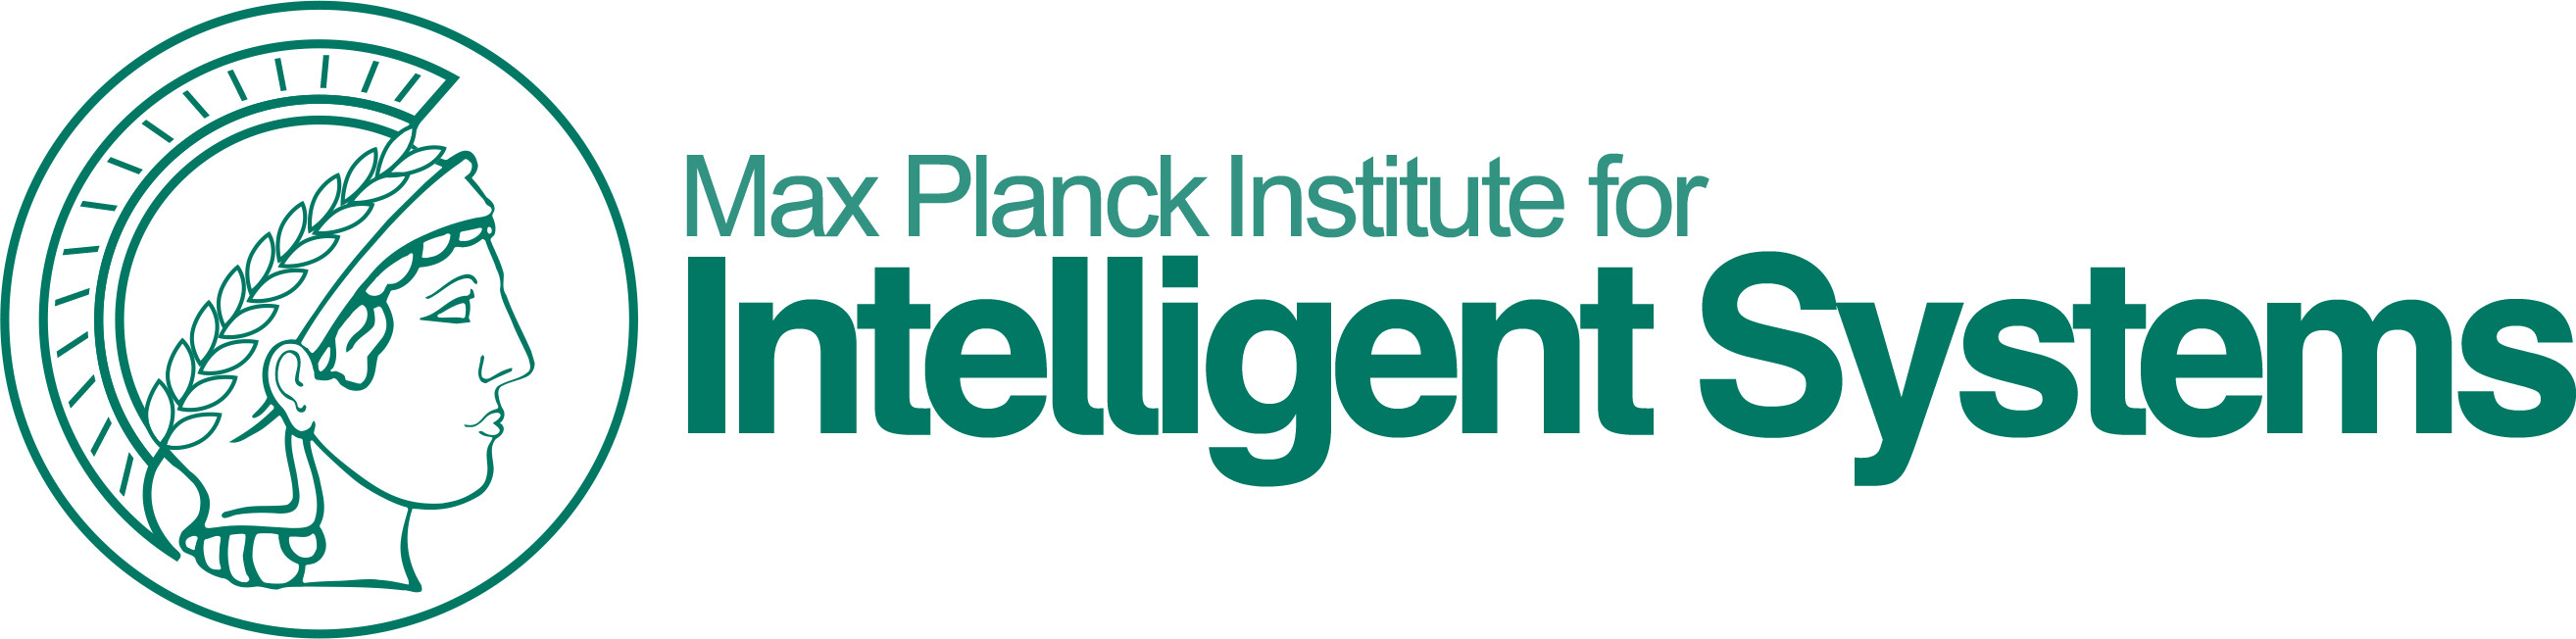 MPG INstitute for Intelligent Systems Logo.